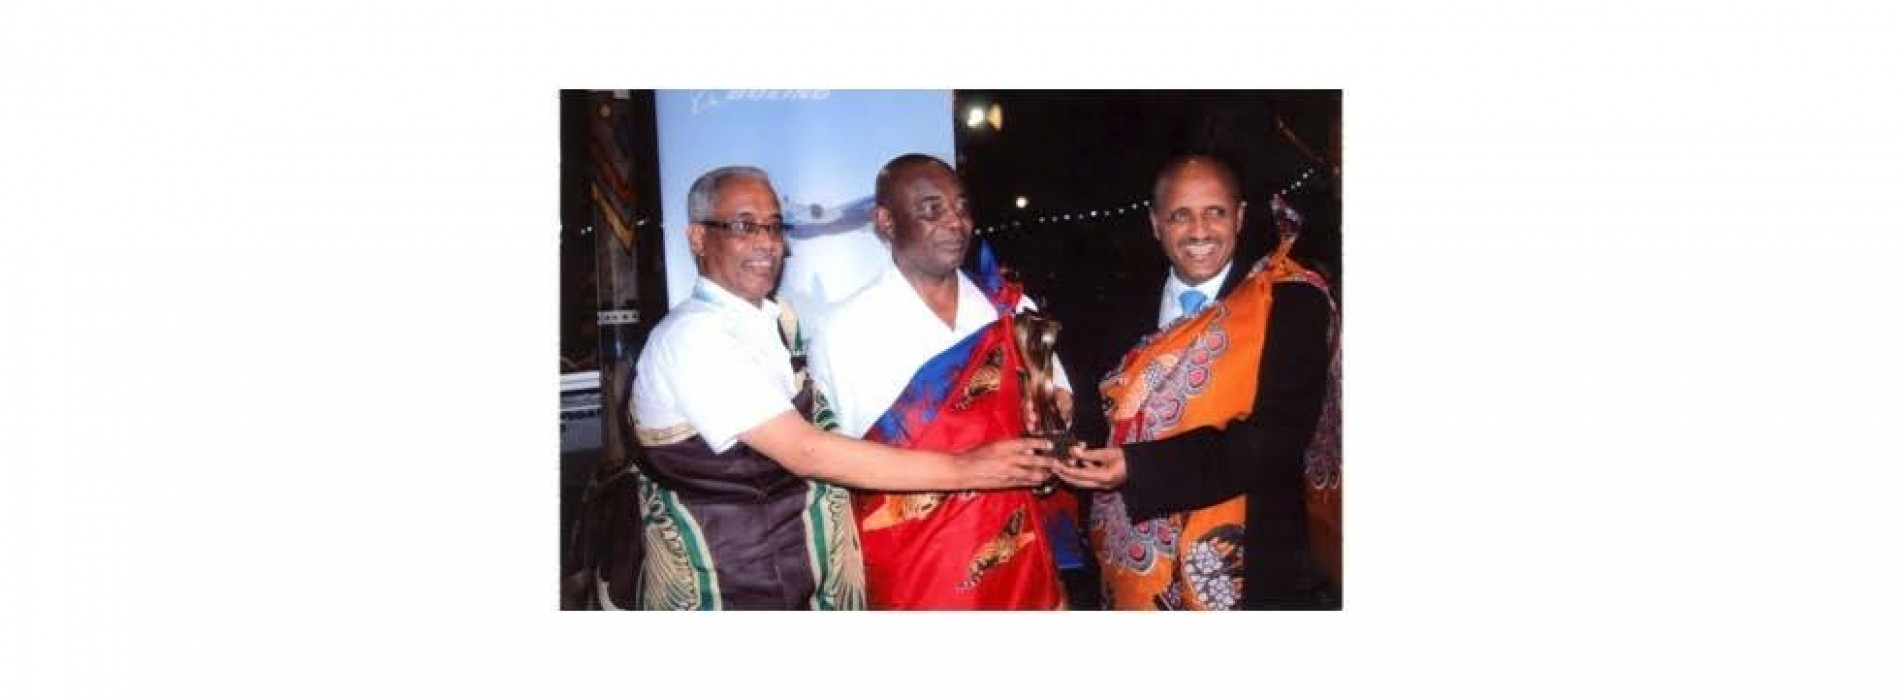 Ethiopian received Airline of the Year Award for the fifth year in a row from AFRAA